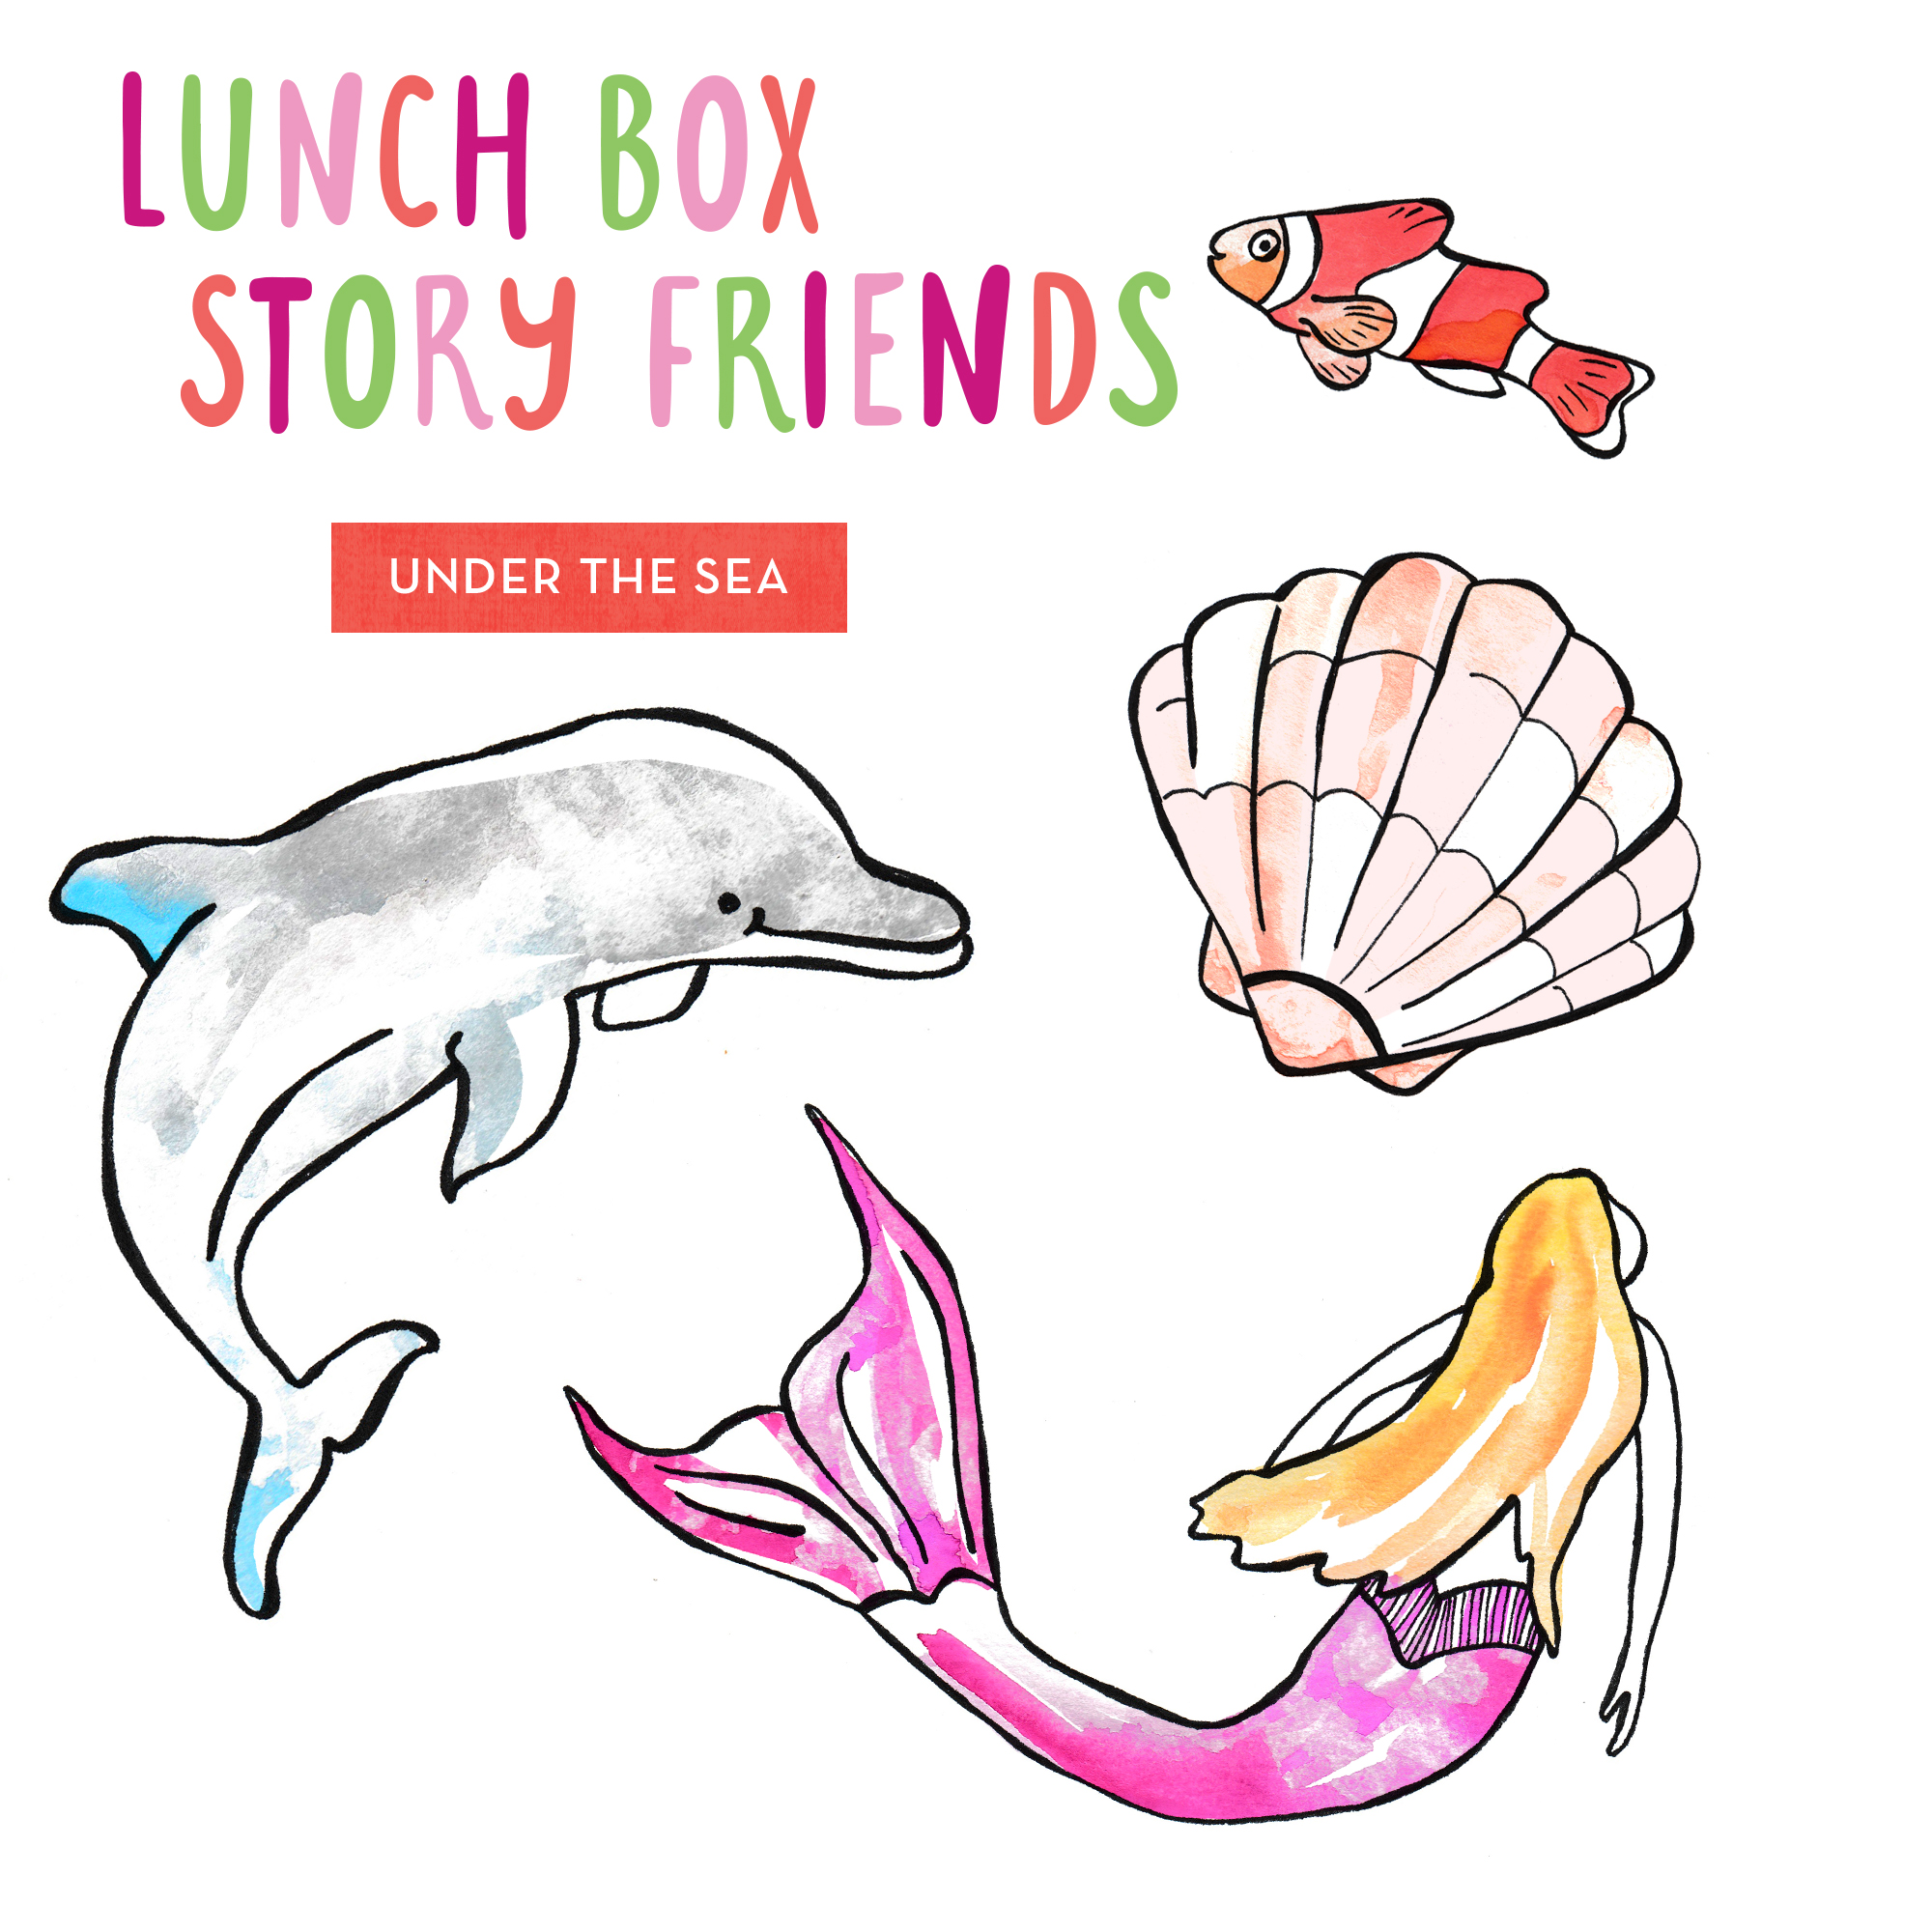 Lunch Box Story Friends Printable - Under the Sea Theme - cute little messages to include in the lunch box